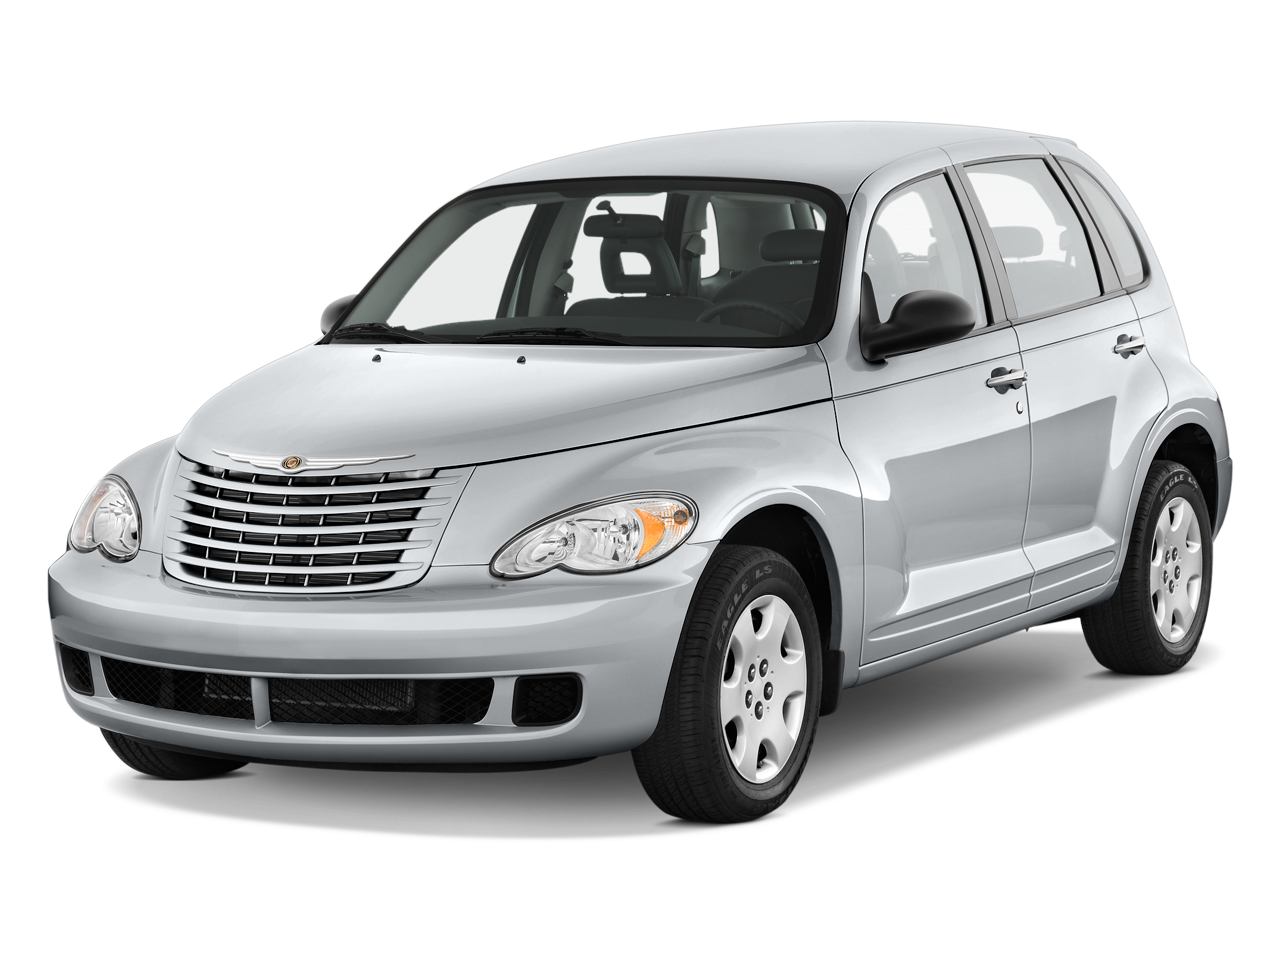 2009 chrysler pt cruiser dream cruiser series 5. Black Bedroom Furniture Sets. Home Design Ideas